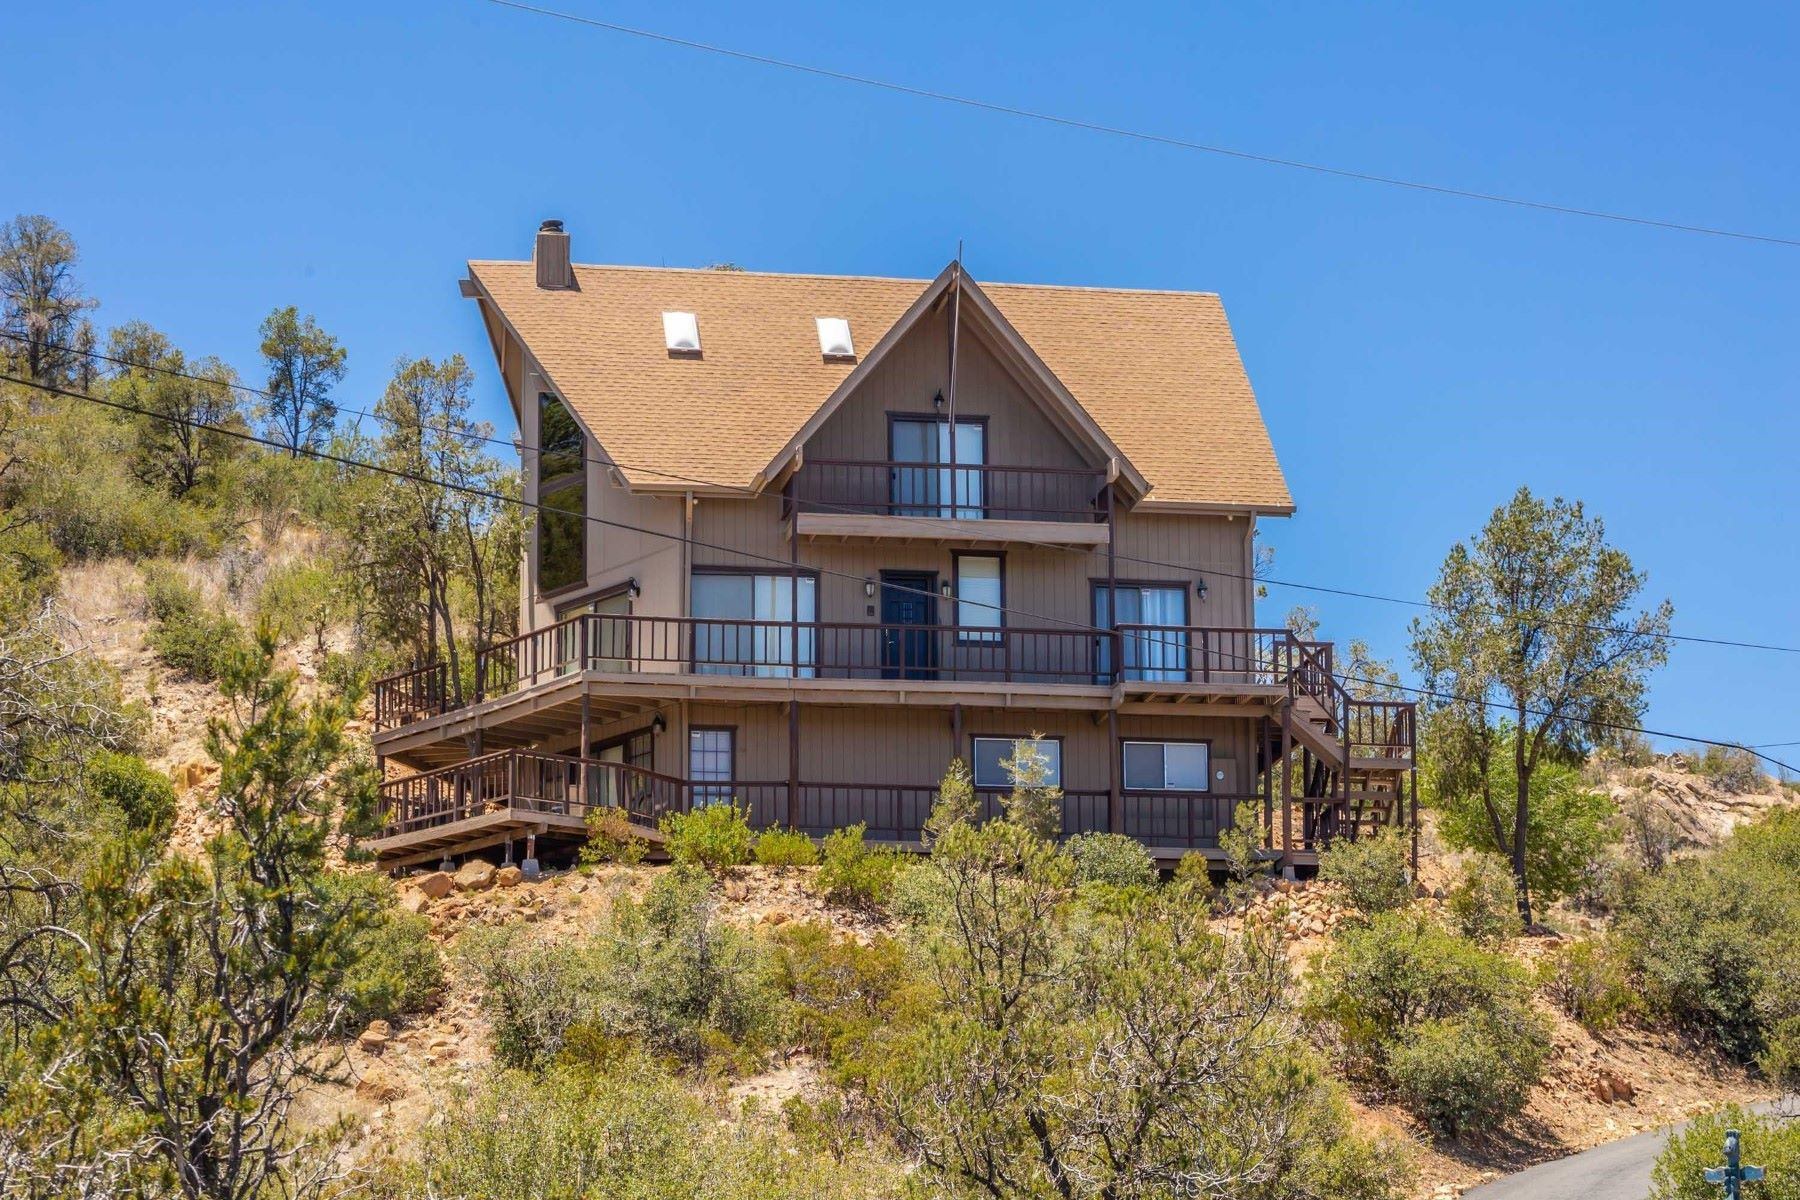 Single Family Homes for Sale at Custom Built Home 2660 N Country Park Drive Prescott, Arizona 86305 United States